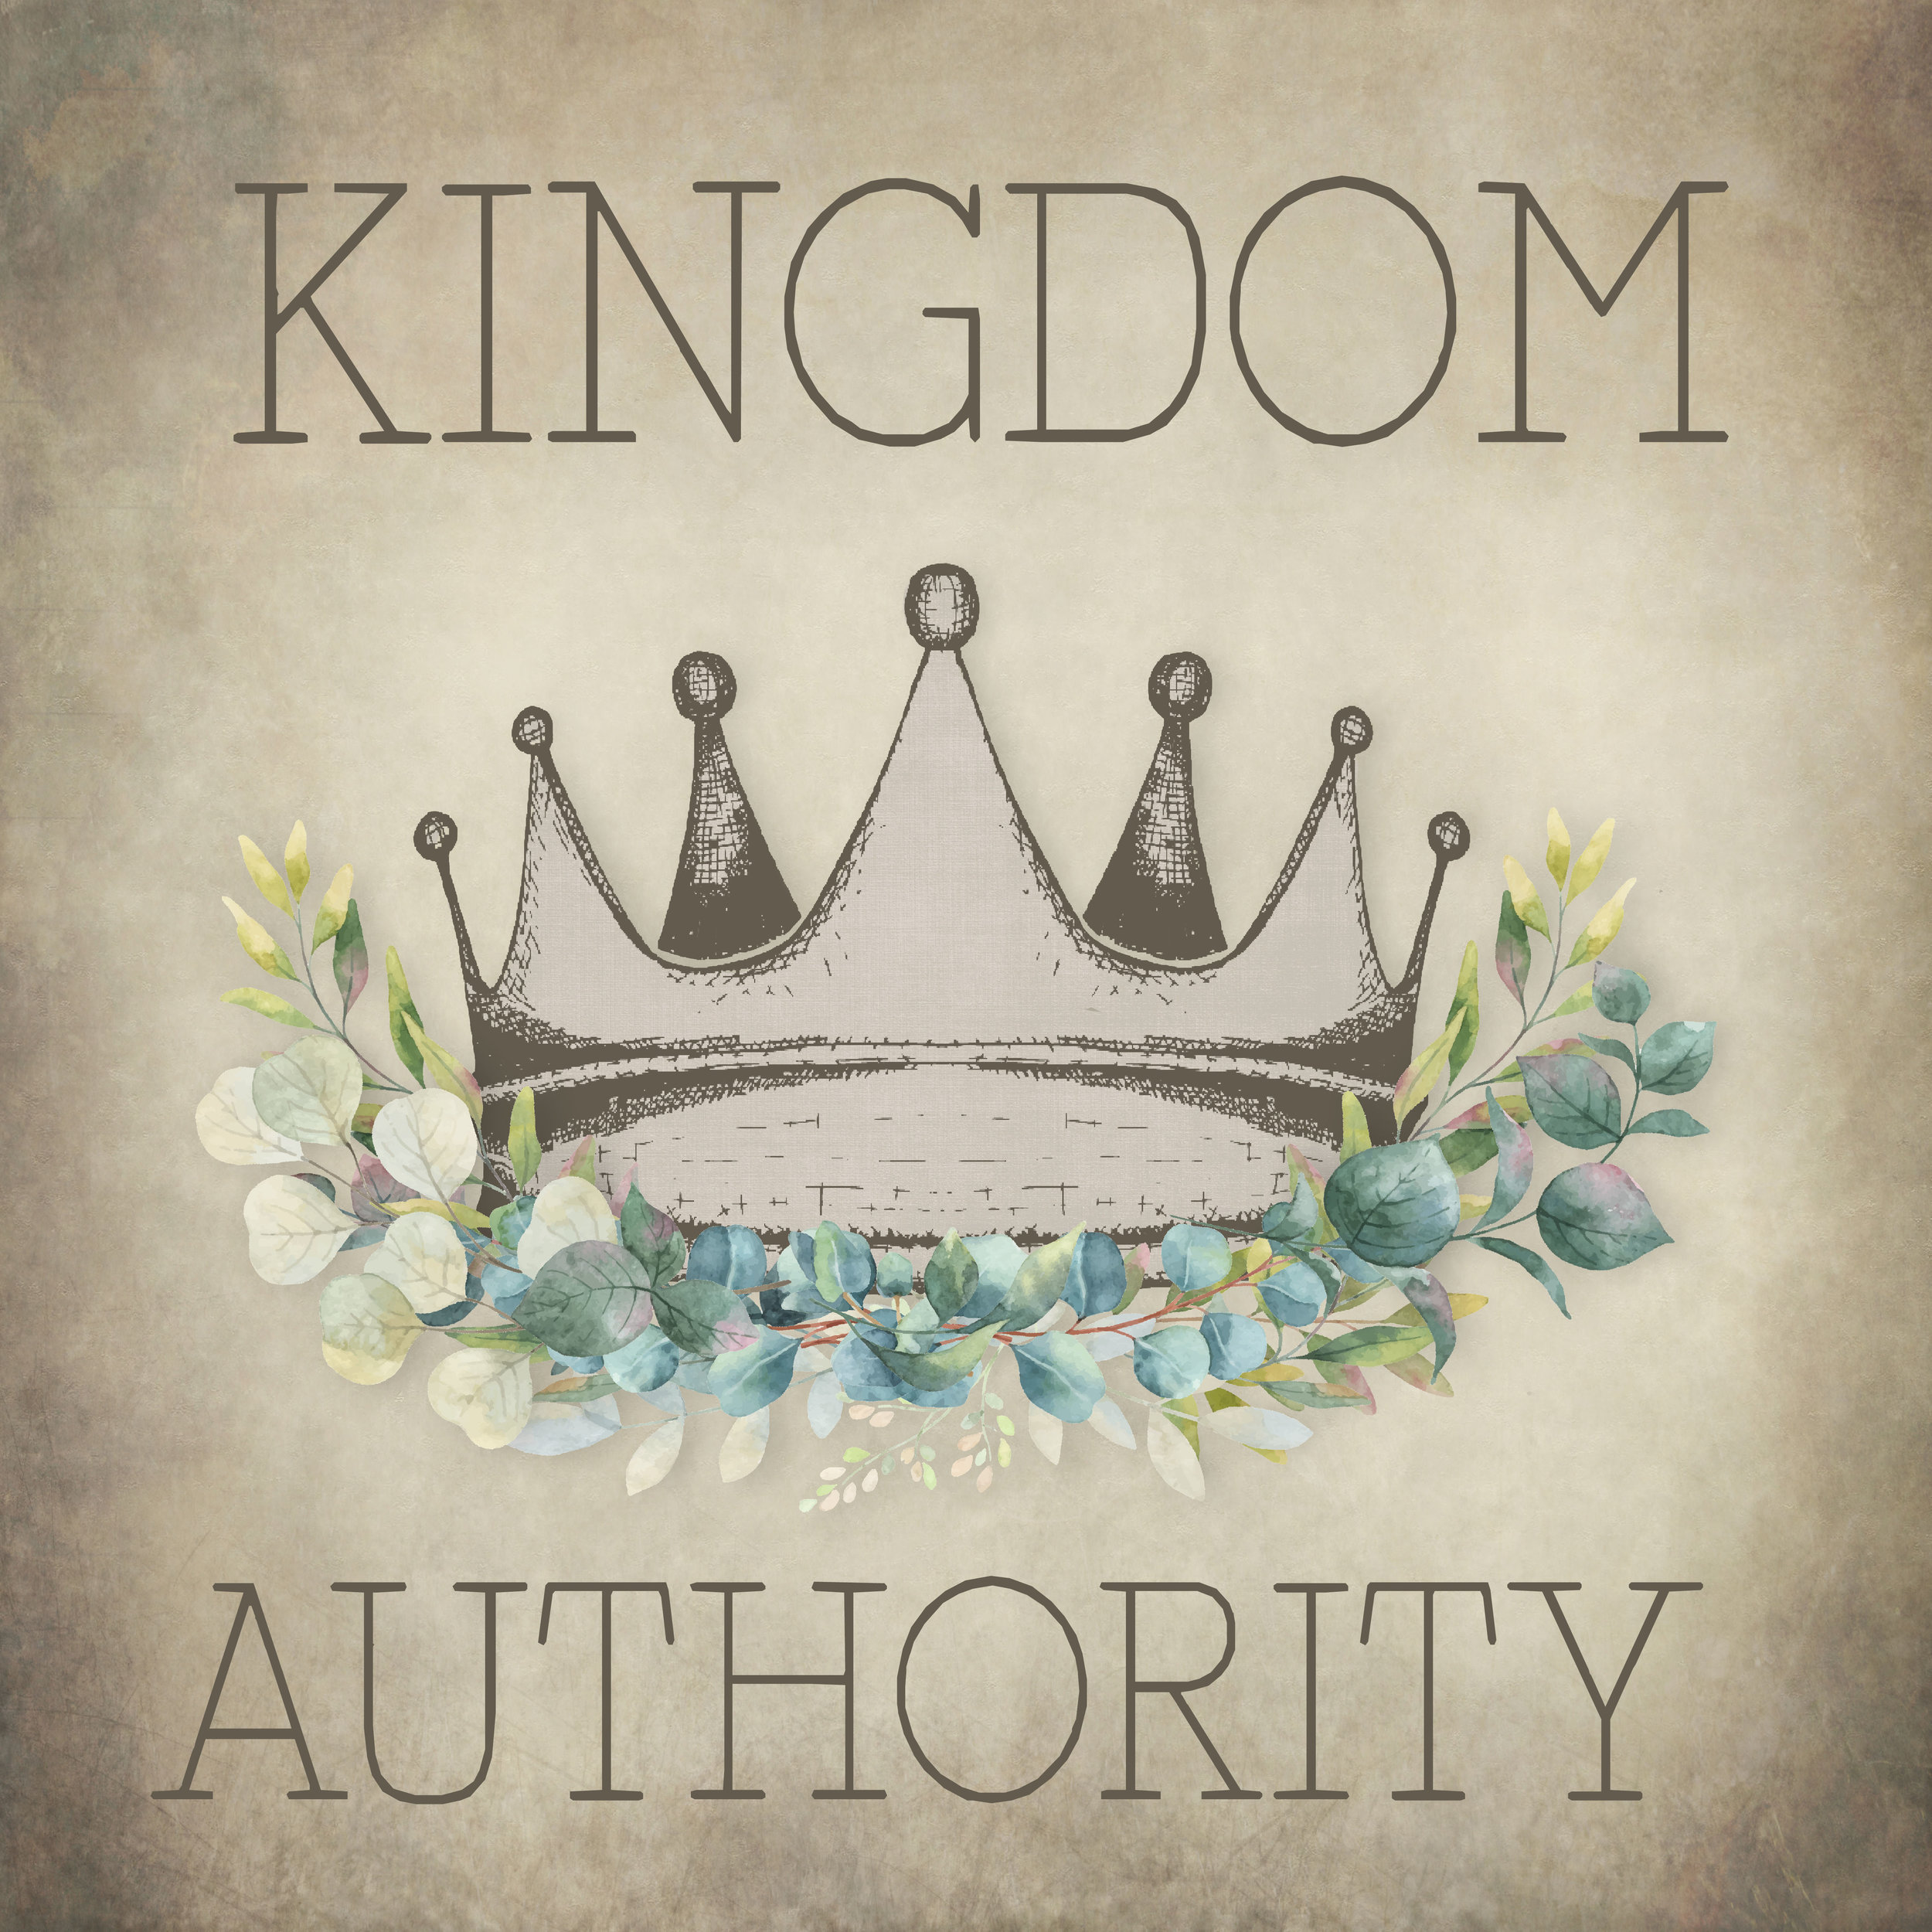 kingdom-authority1.jpg